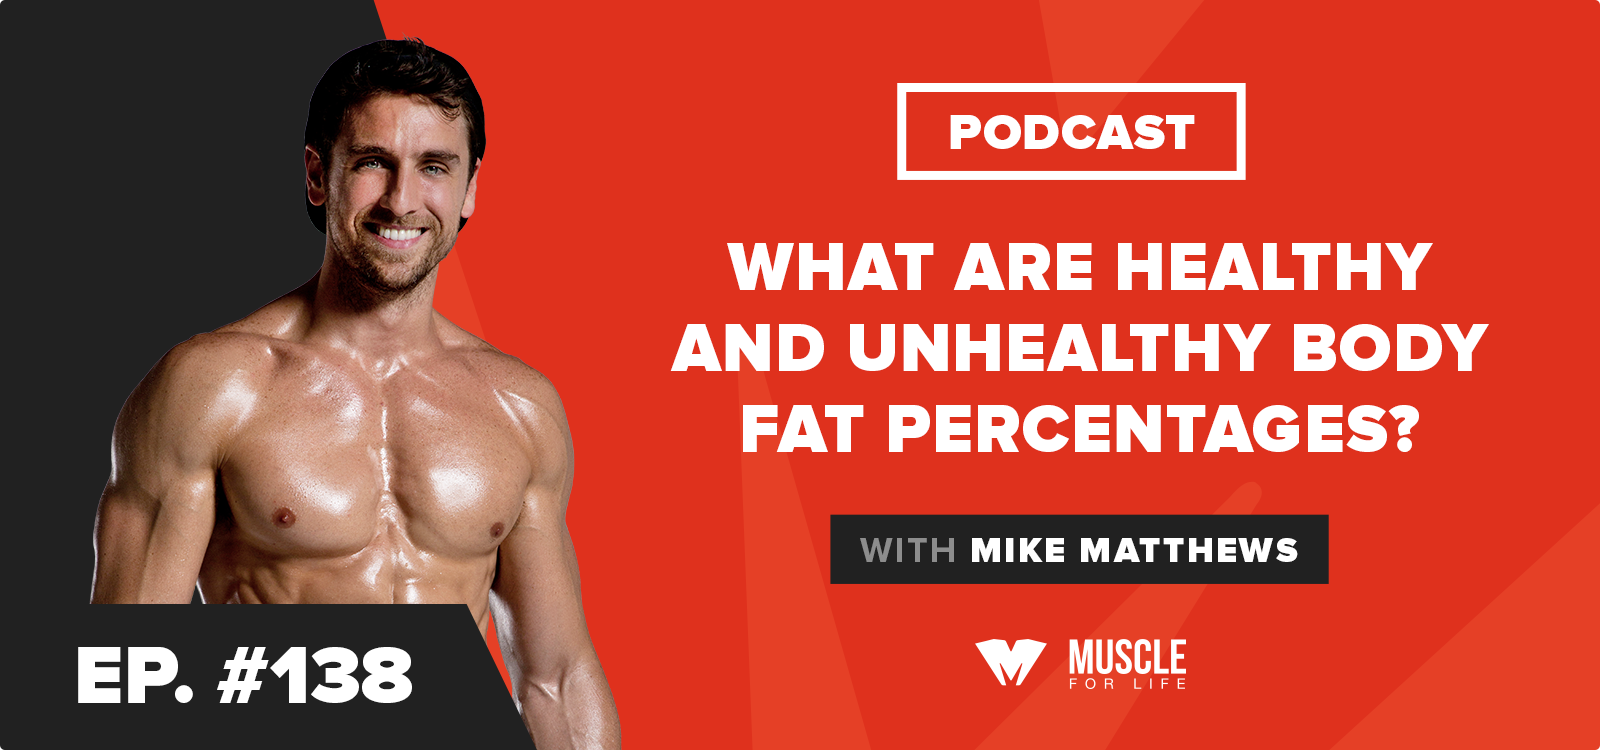 What Are Healthy and Unhealthy Body Fat Percentages?